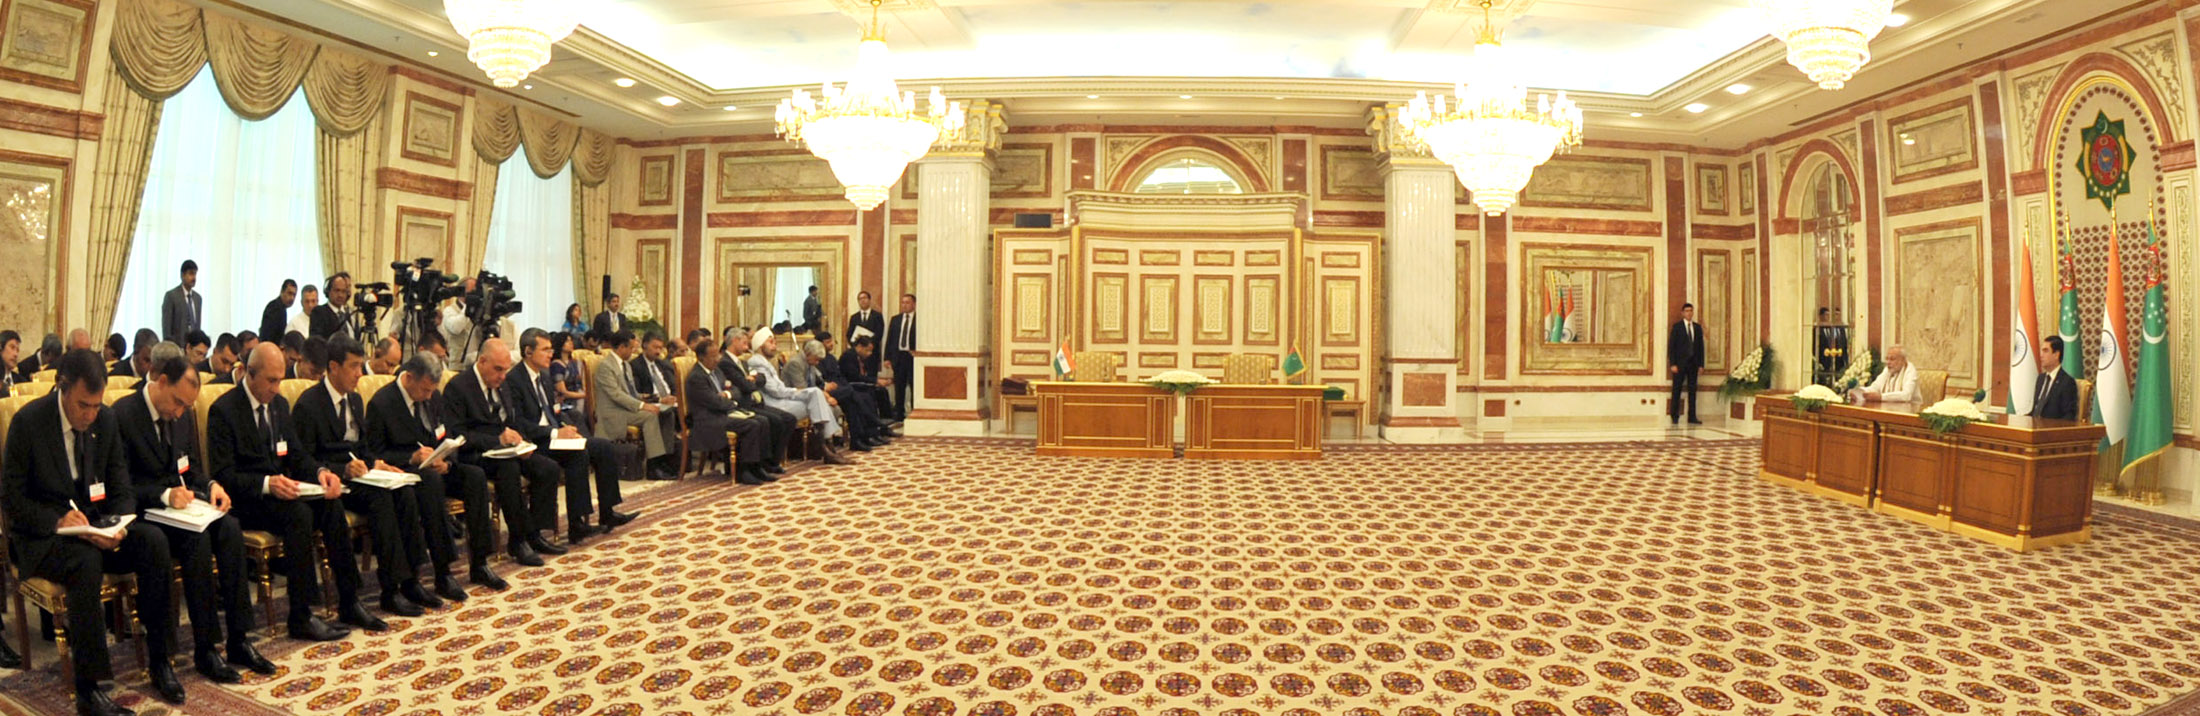 The Prime Minister, Shri Narendra Modi with the President of Turkmenistan, Mr. Gurbanguly Berdimuhamedov at the Press Statements, in Ashgabat, Turkmenistan on July 11, 2015.